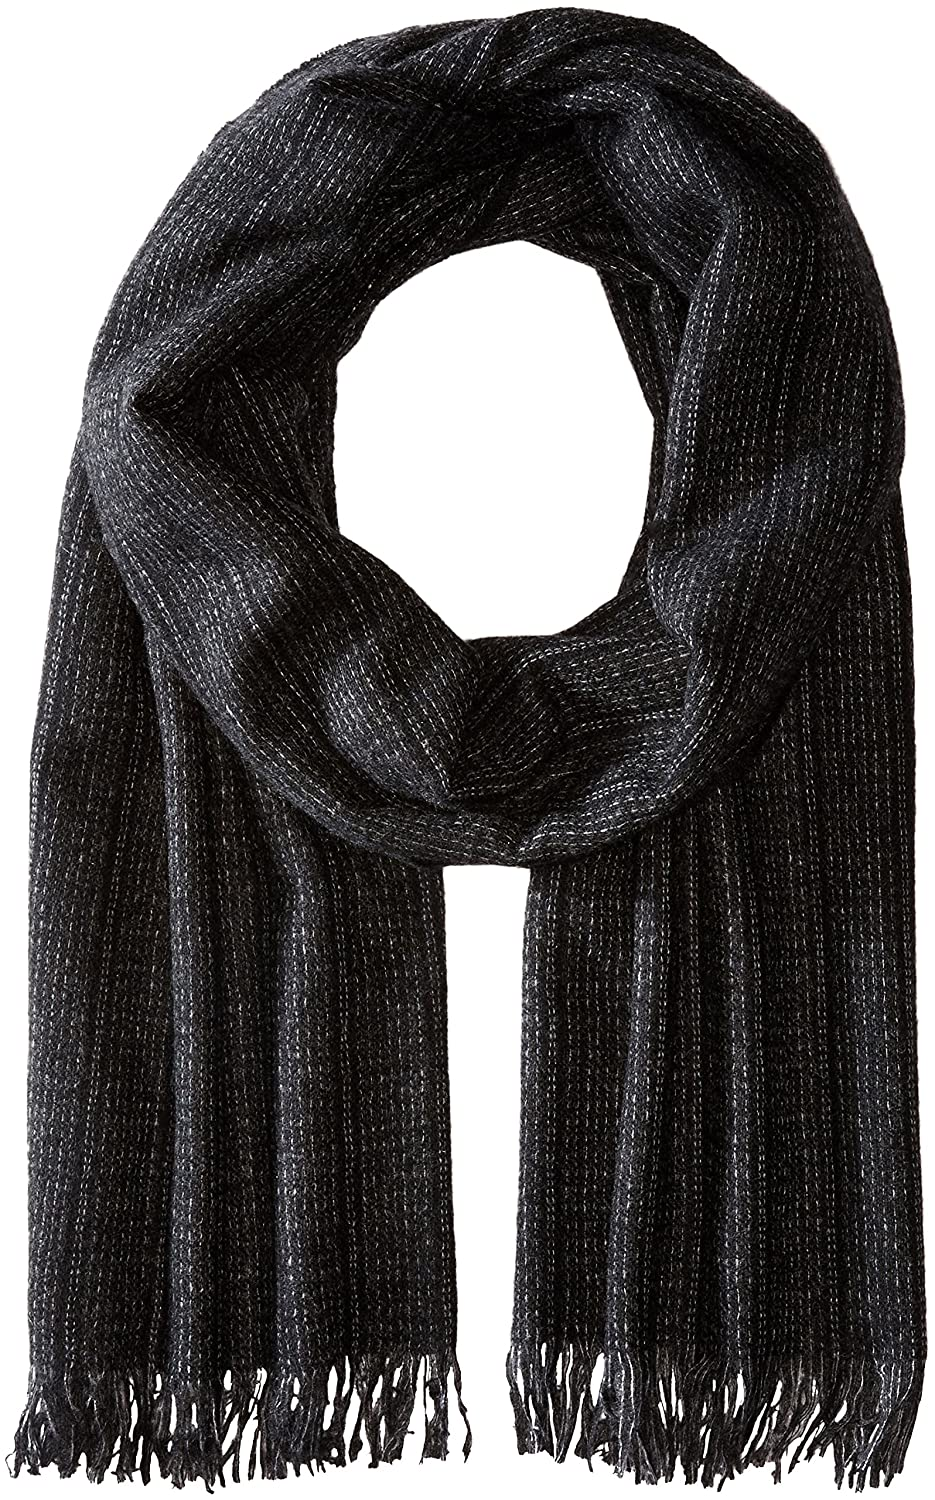 John Varvatos Star U.S.A Men's Ticking Stripe Charcoal One Size Phenix Men' s Cold Weather Accessories SCW-1881